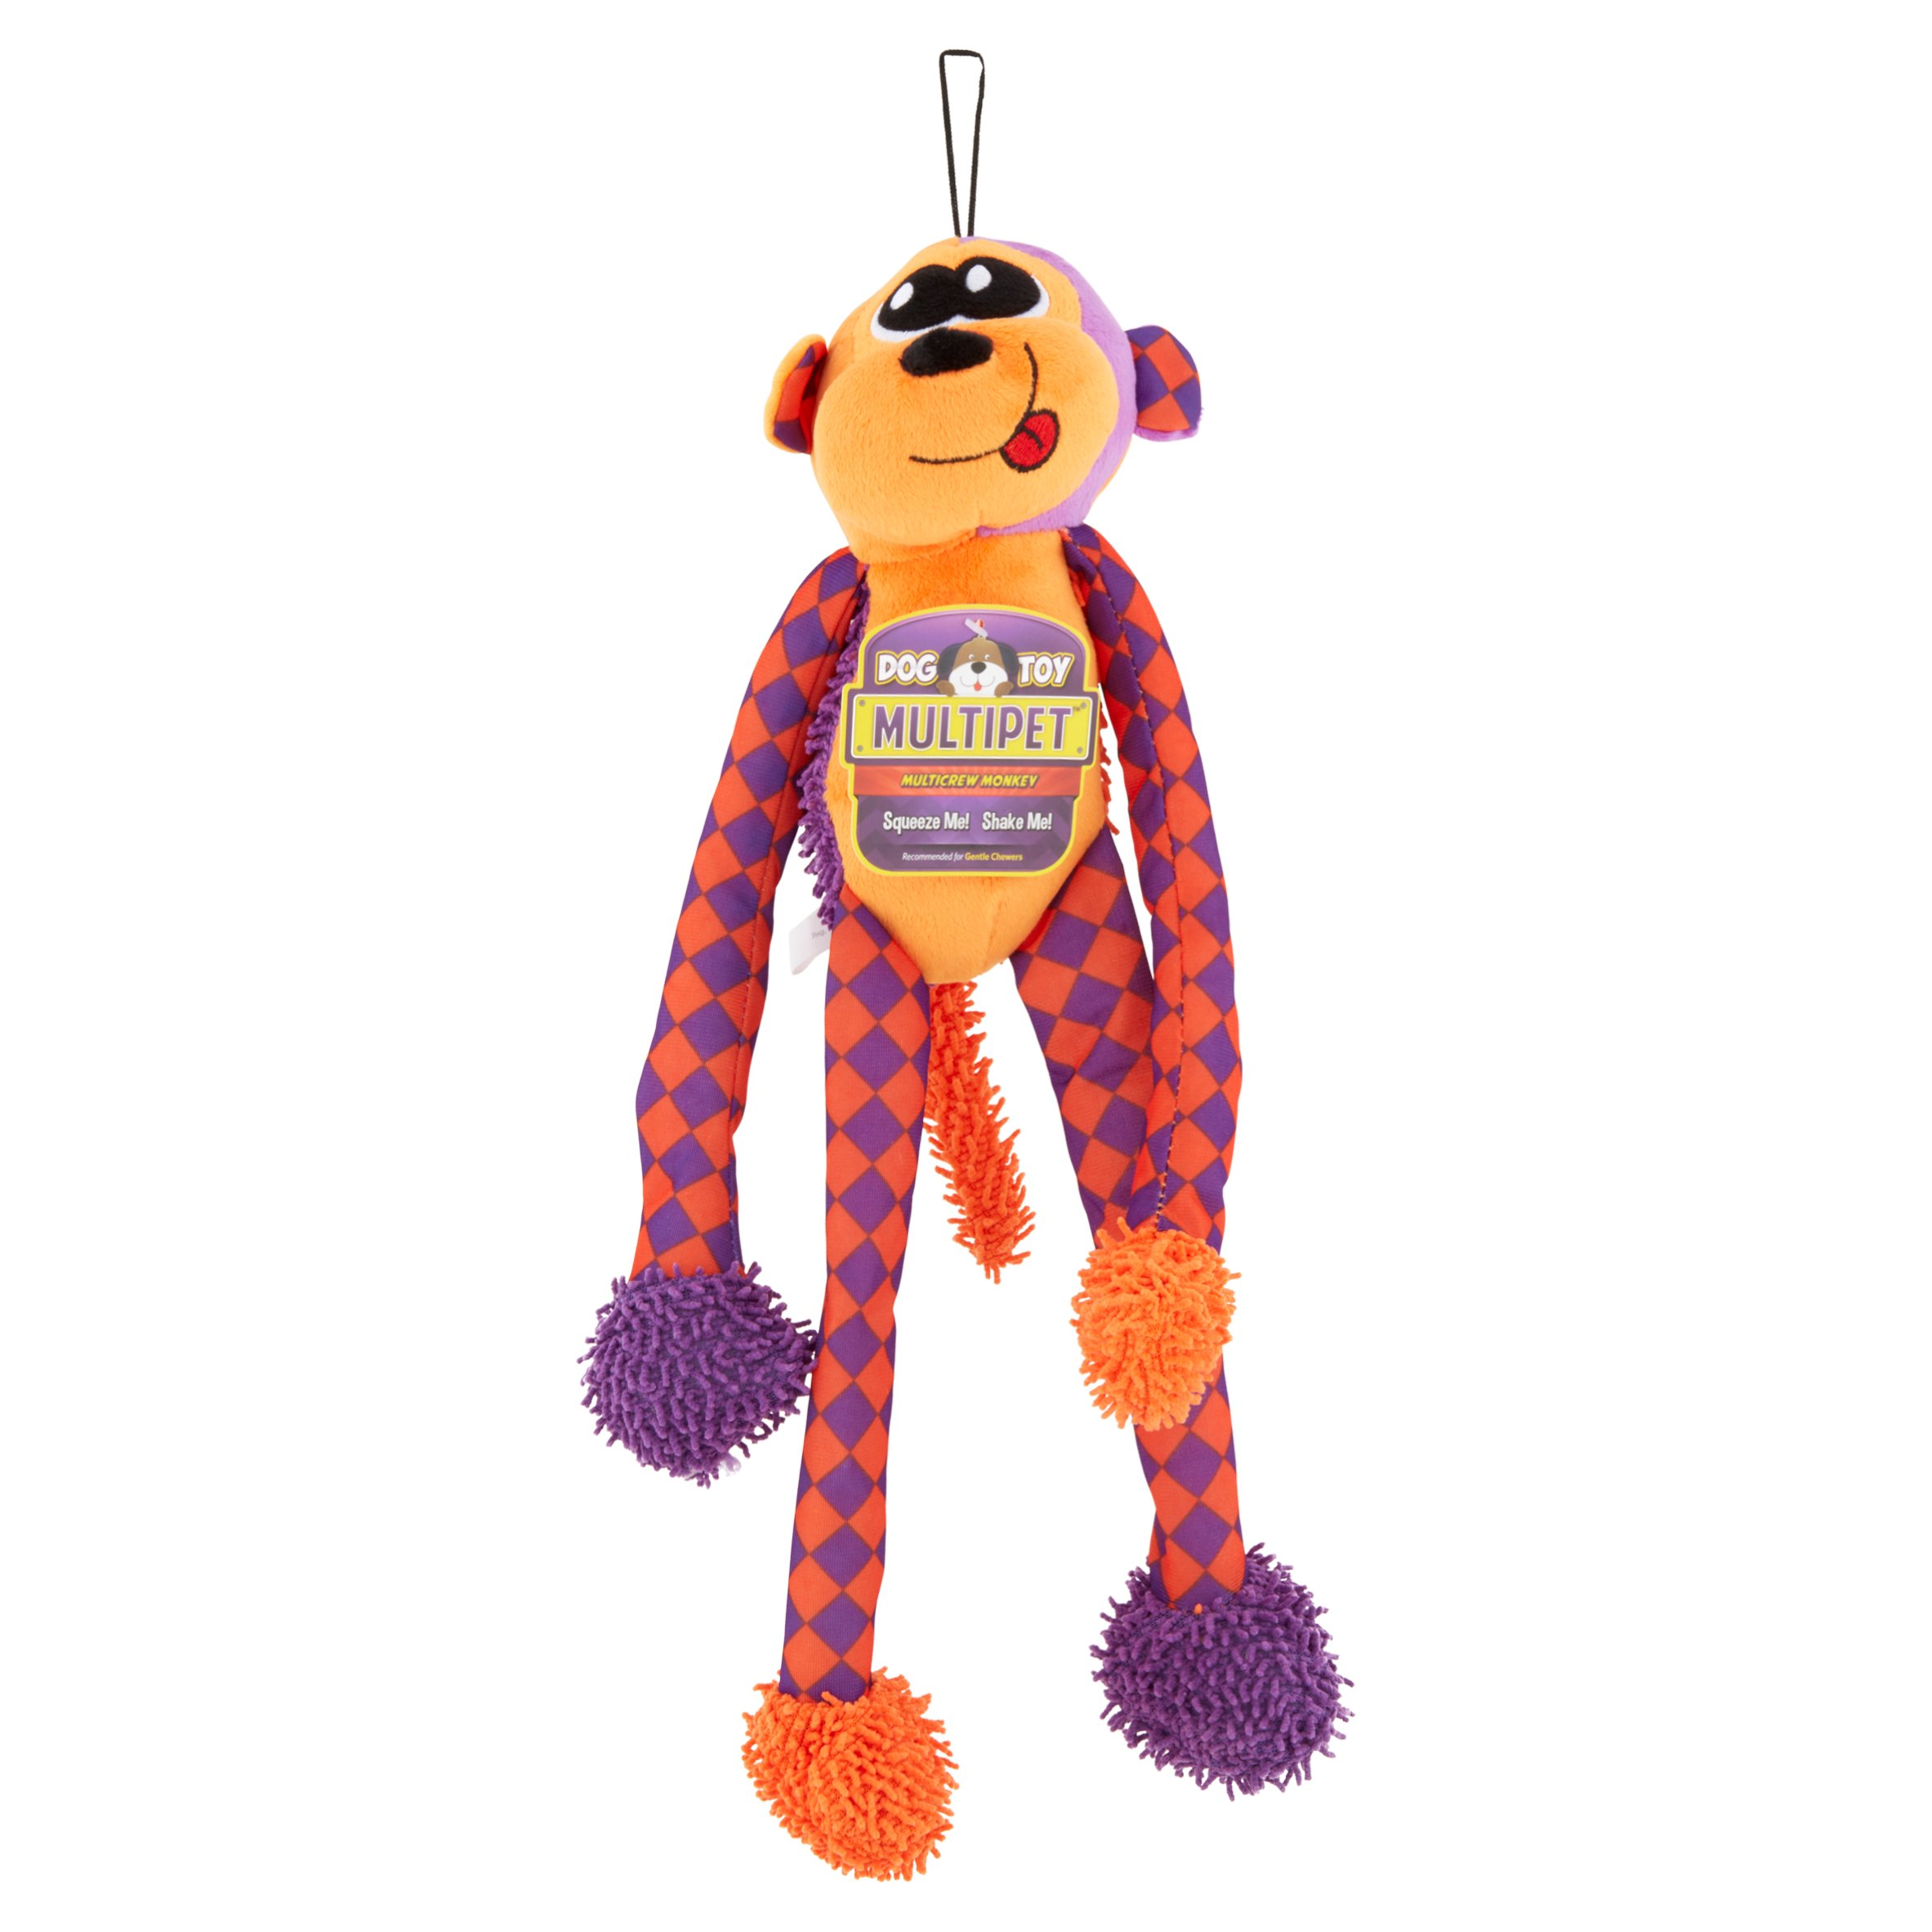 Multipet Dog Toy Multicrew Monkey by Multipet International Inc.